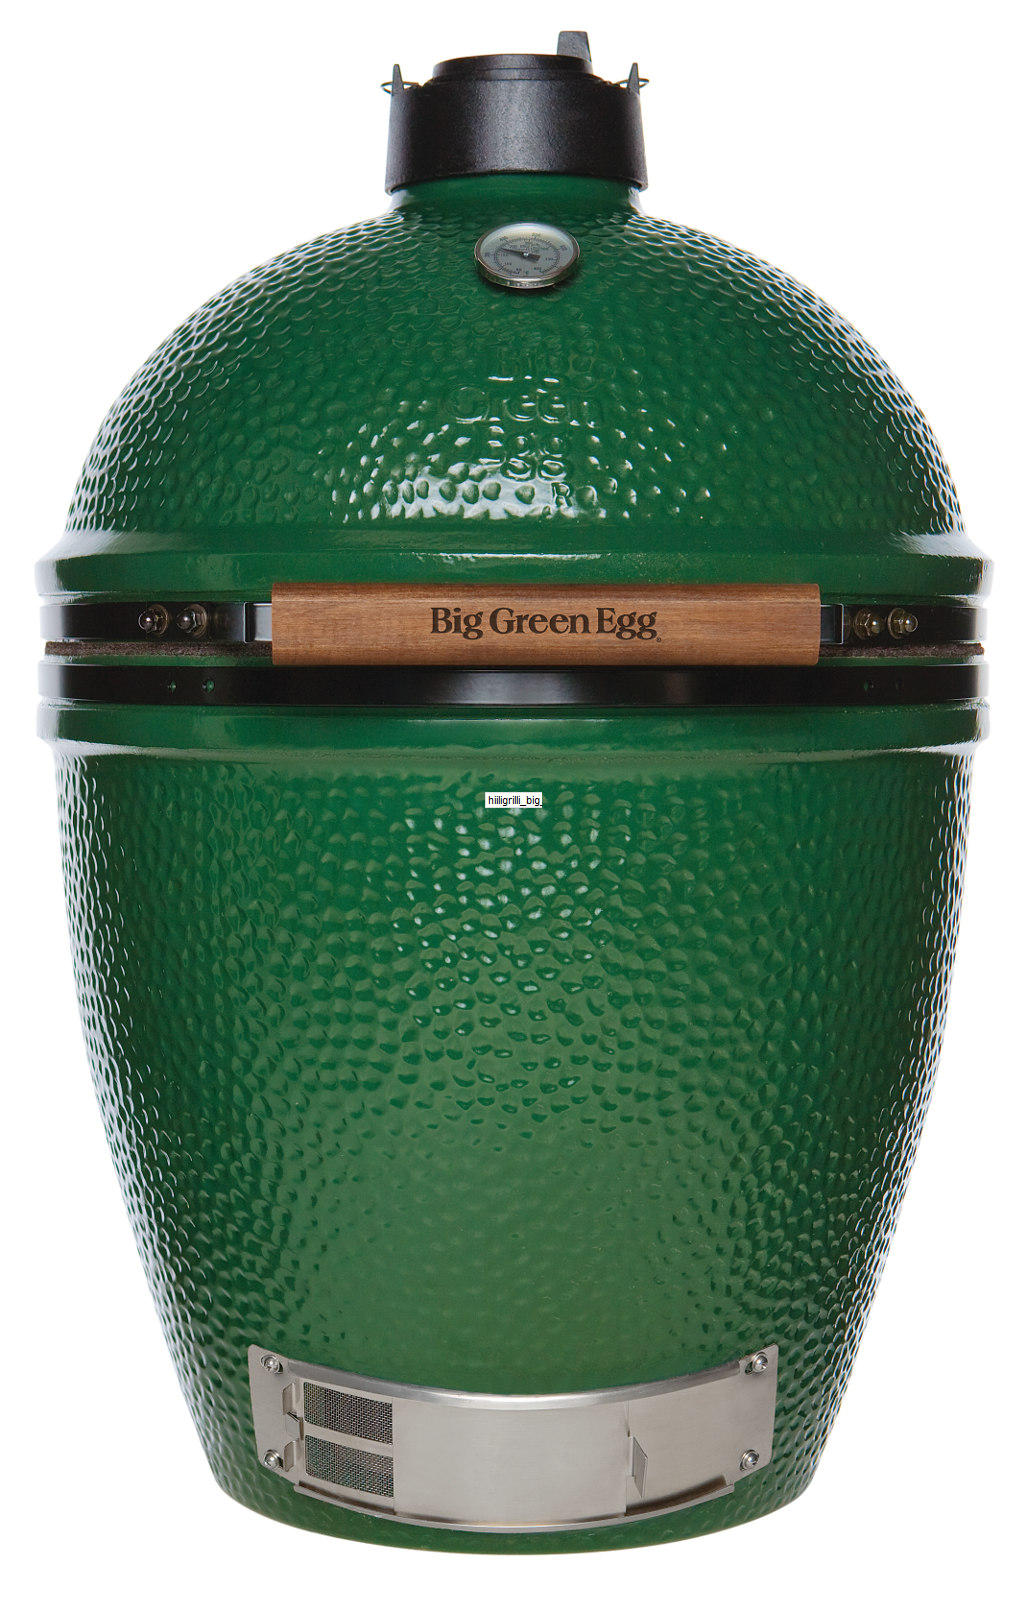 Hiiligrilli Big Green Egg Large